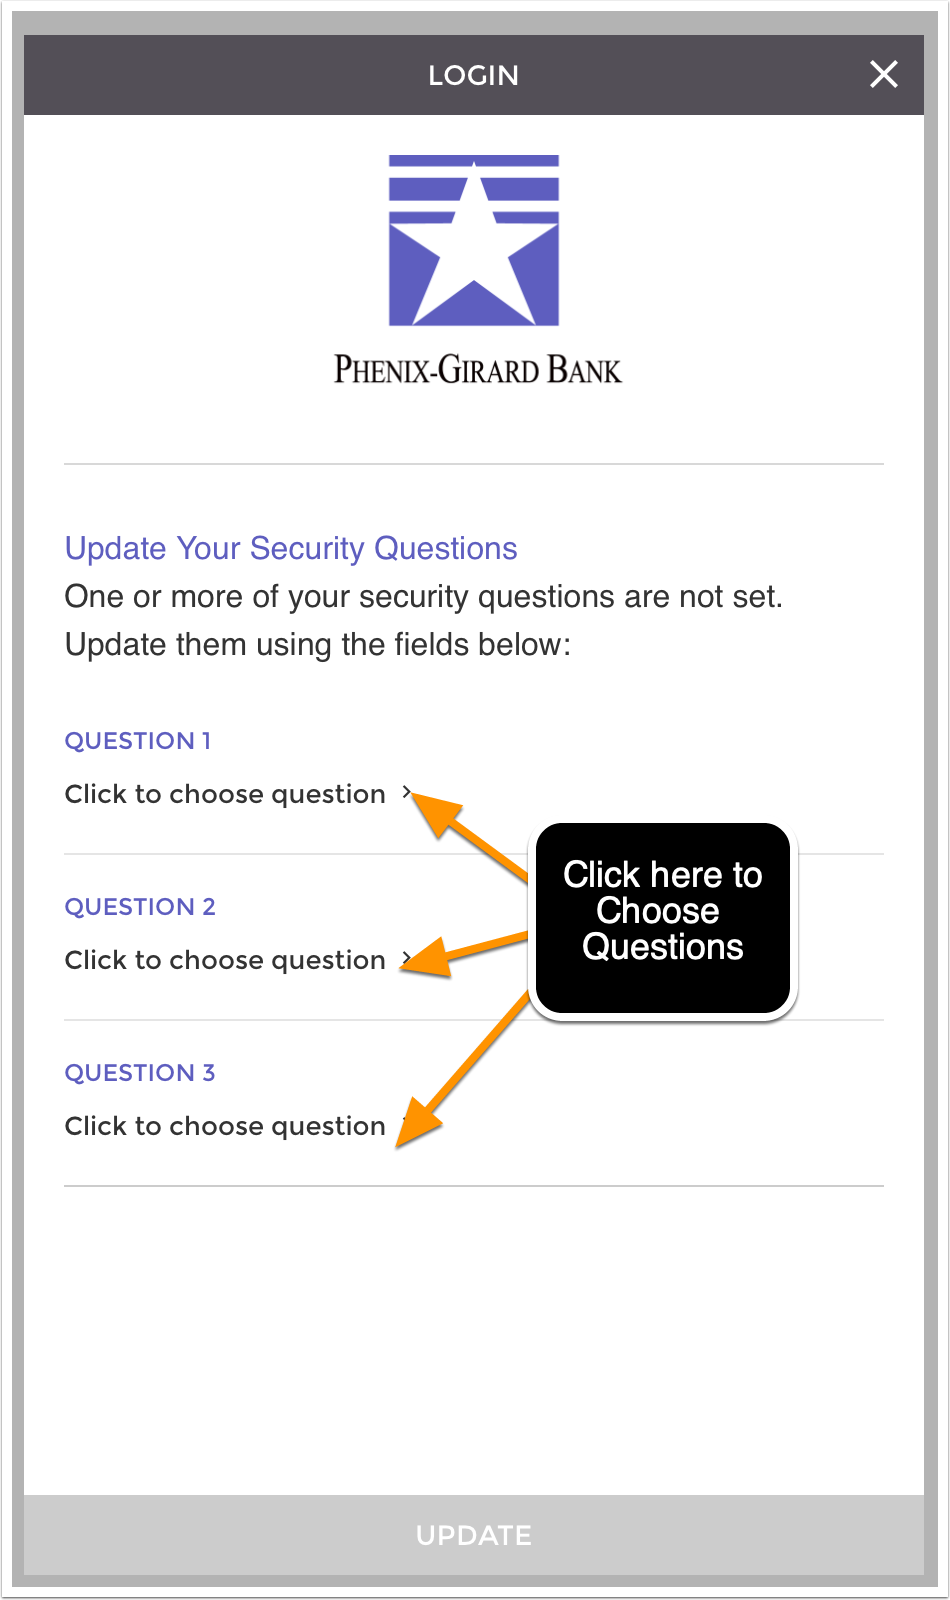 update-your-security-questions.png